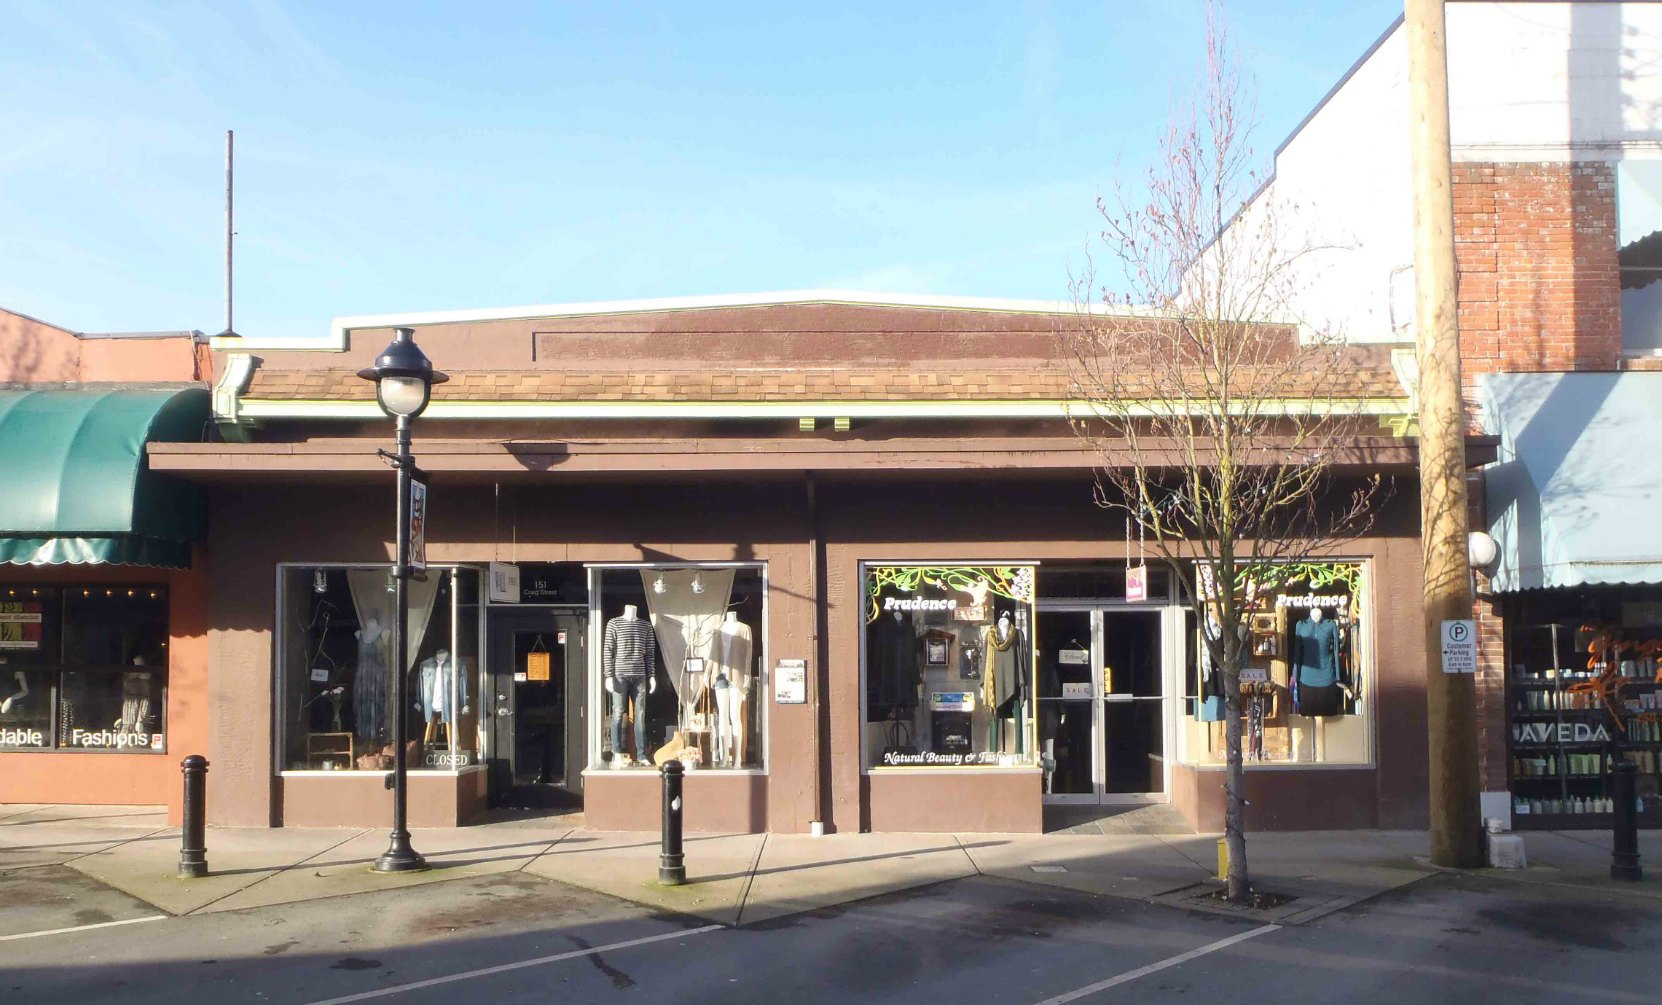 151-155 Craig Street. Built by architect Douglas James in 1929 for Hugh Savage's Cowichan Leader newspaper.